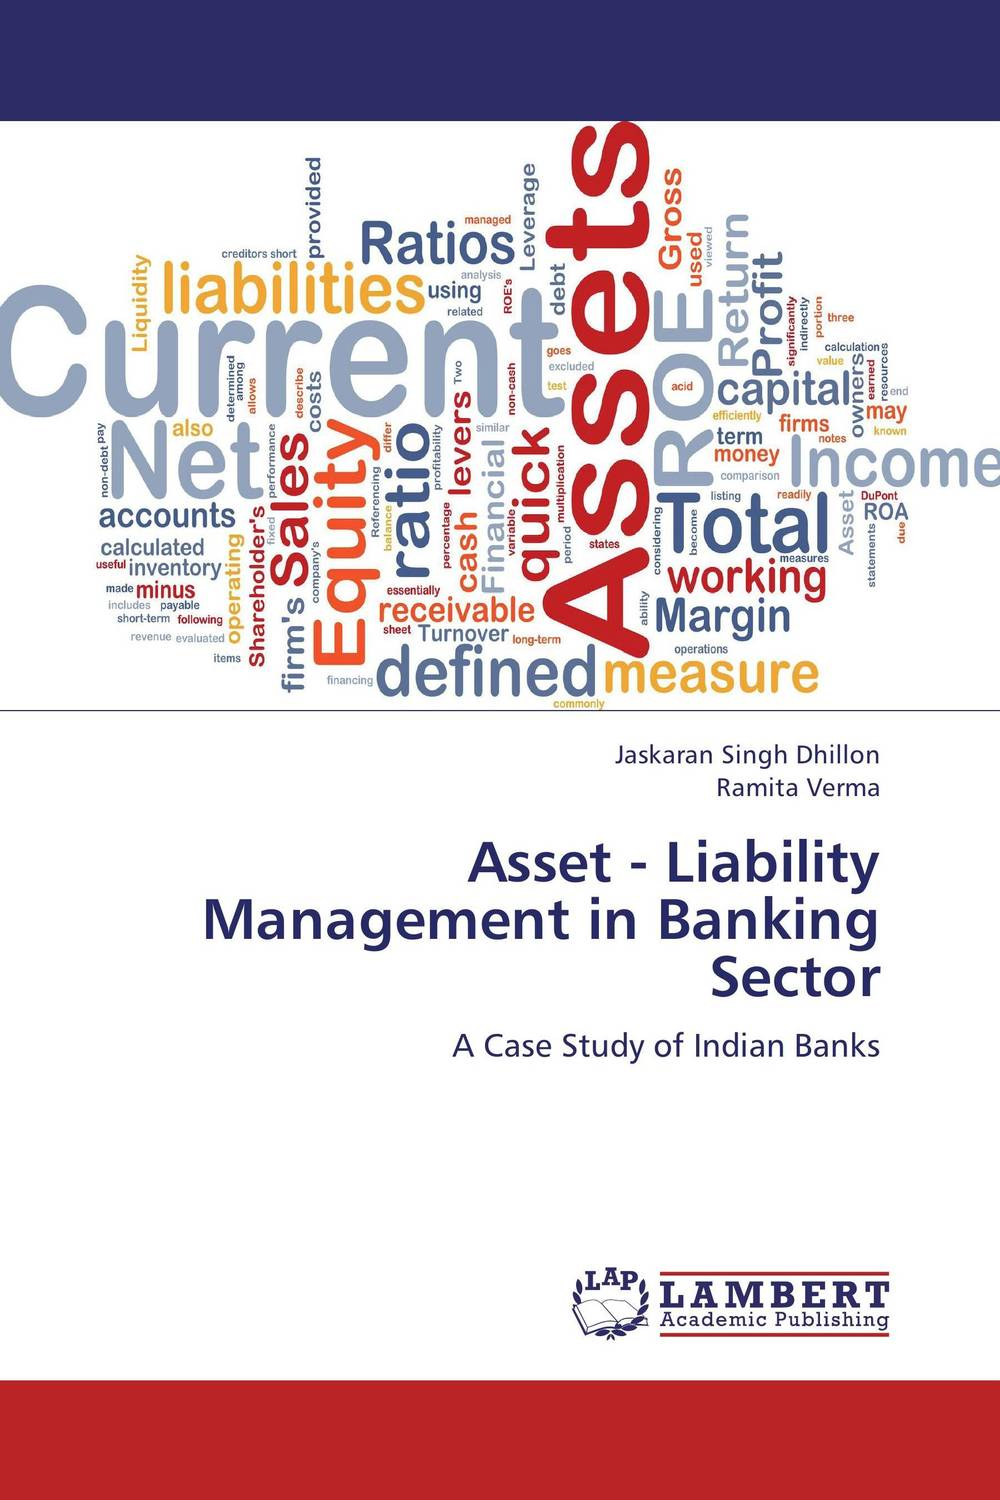 Asset - Liability Management in Banking Sector christian szylar handbook of market risk